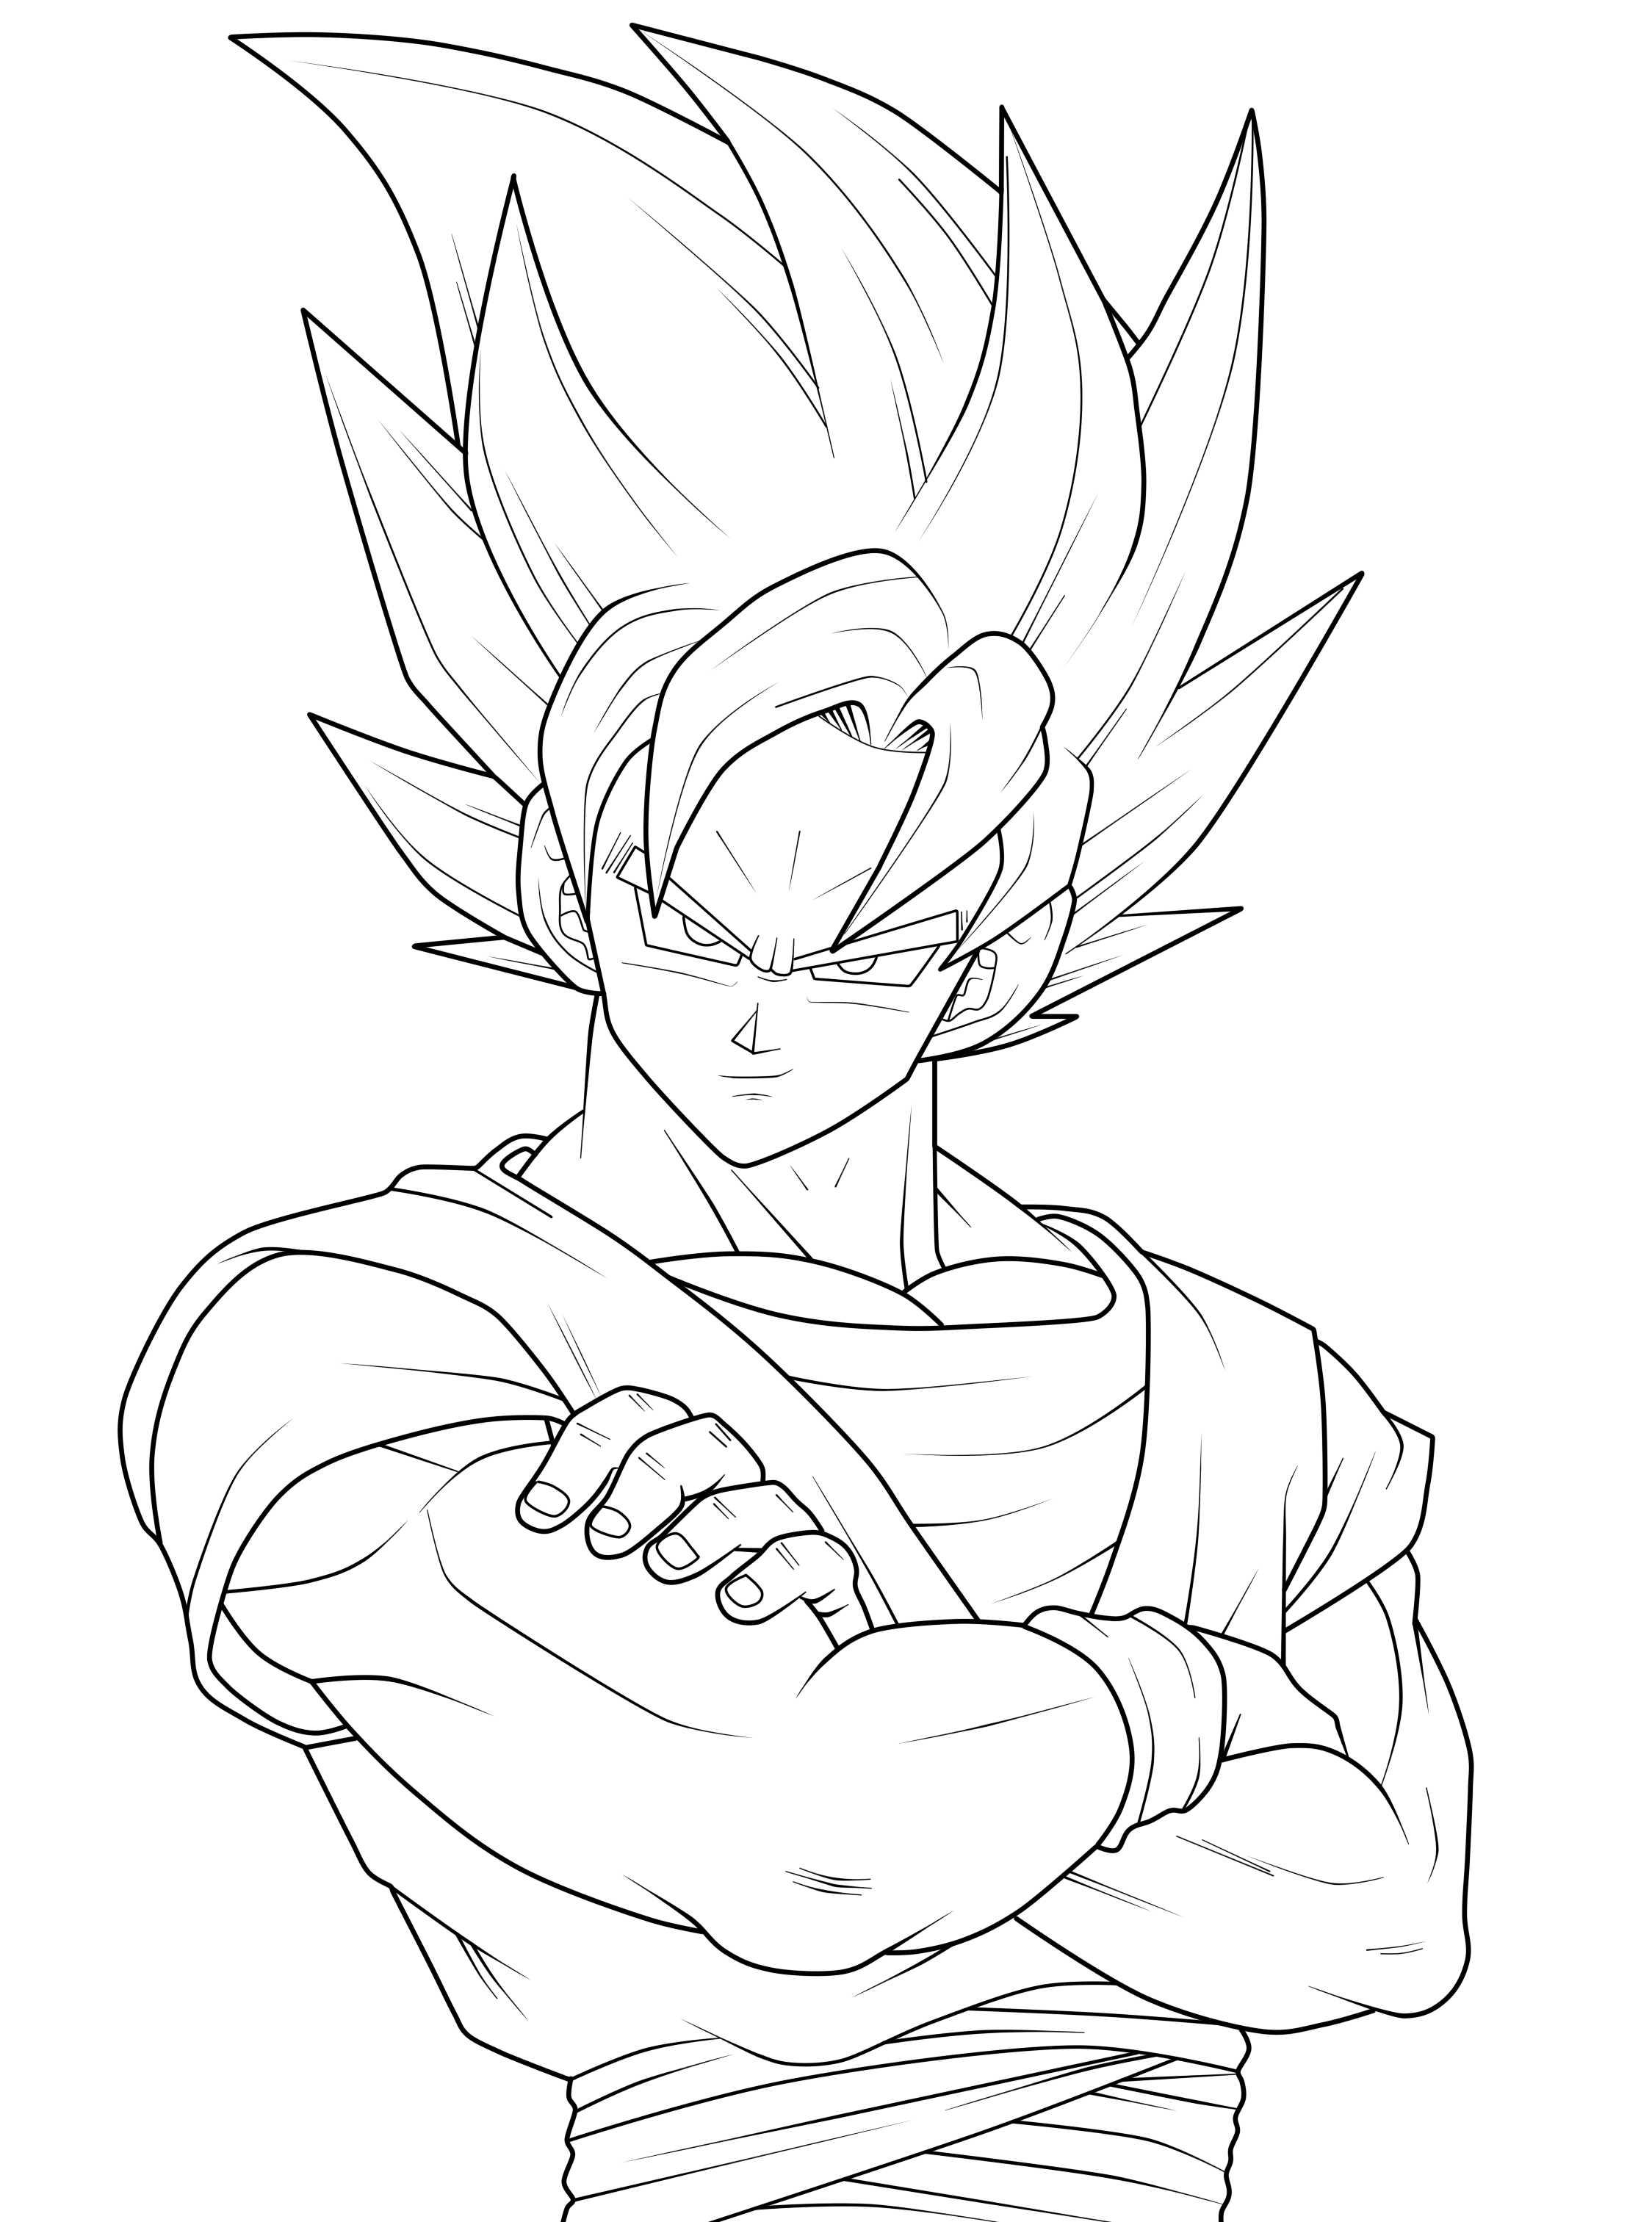 Adult Top Goku Coloring Pages Printable Gallery Images top goku coloring pages to print printable for kids 10 pics of gallery images